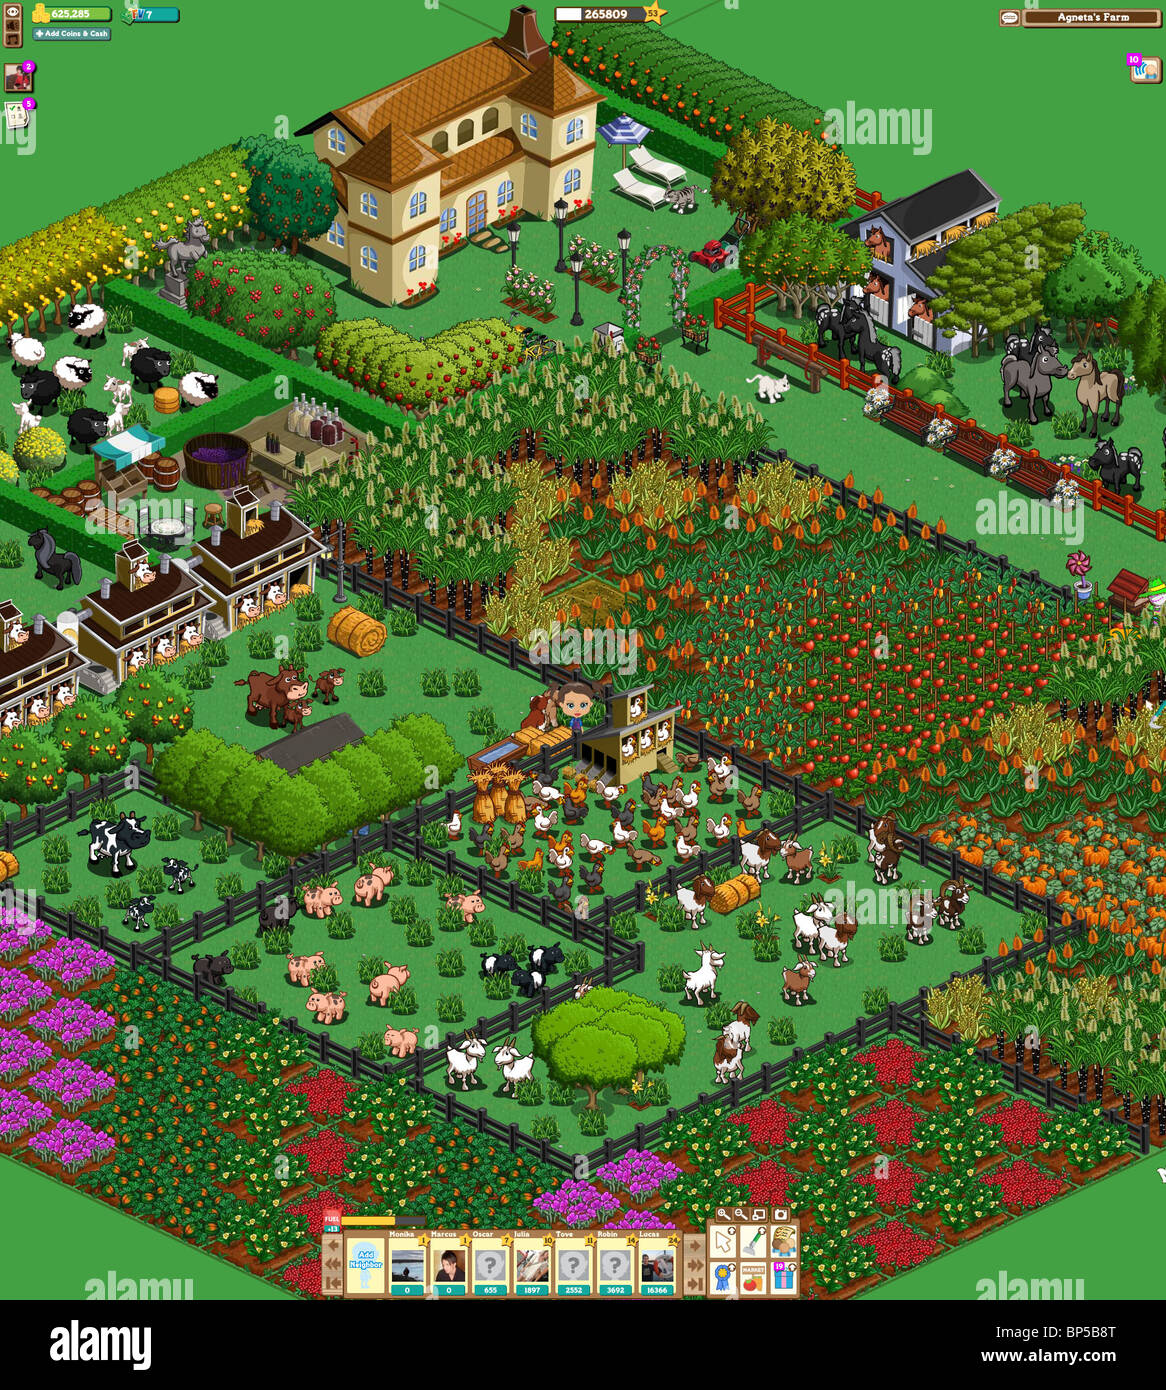 Farmville. Screenshot from a hi-res screen. Farmville is an online computer game within Facebook, with millions - Stock Image